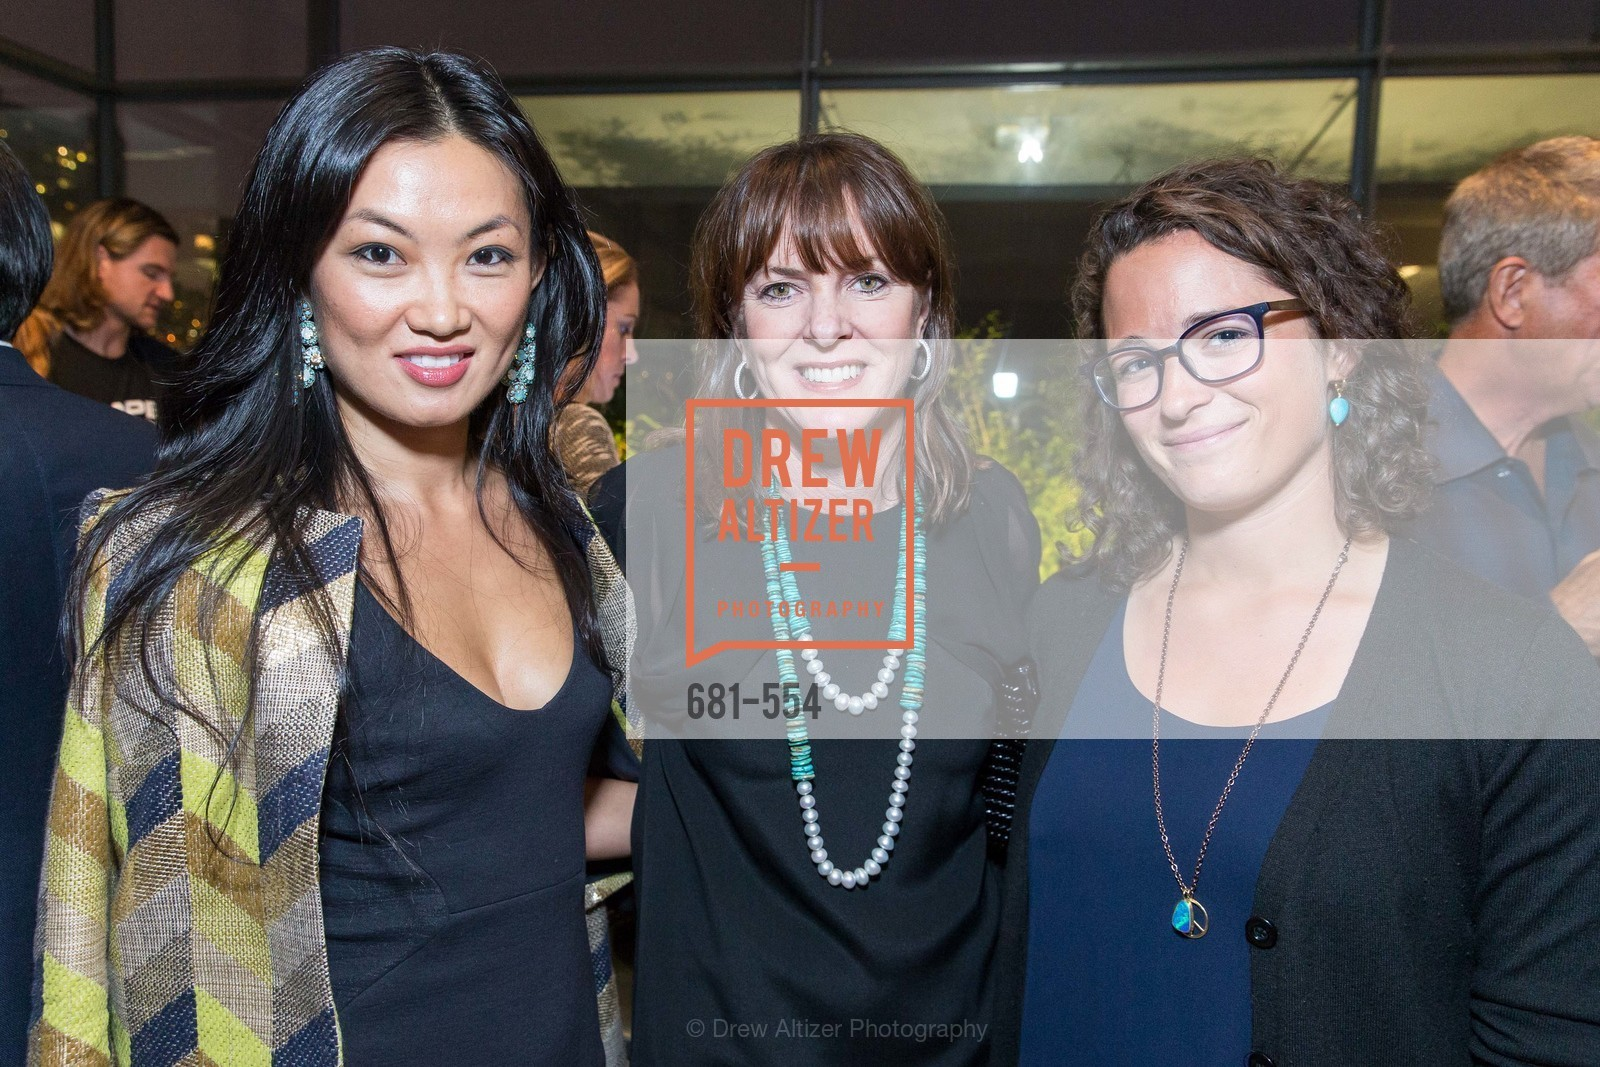 Ching Nola, Allison Speer, Jessica Curran, CMH HELI SKIING Event, US, September 4th, 2014,Drew Altizer, Drew Altizer Photography, full-service agency, private events, San Francisco photographer, photographer california